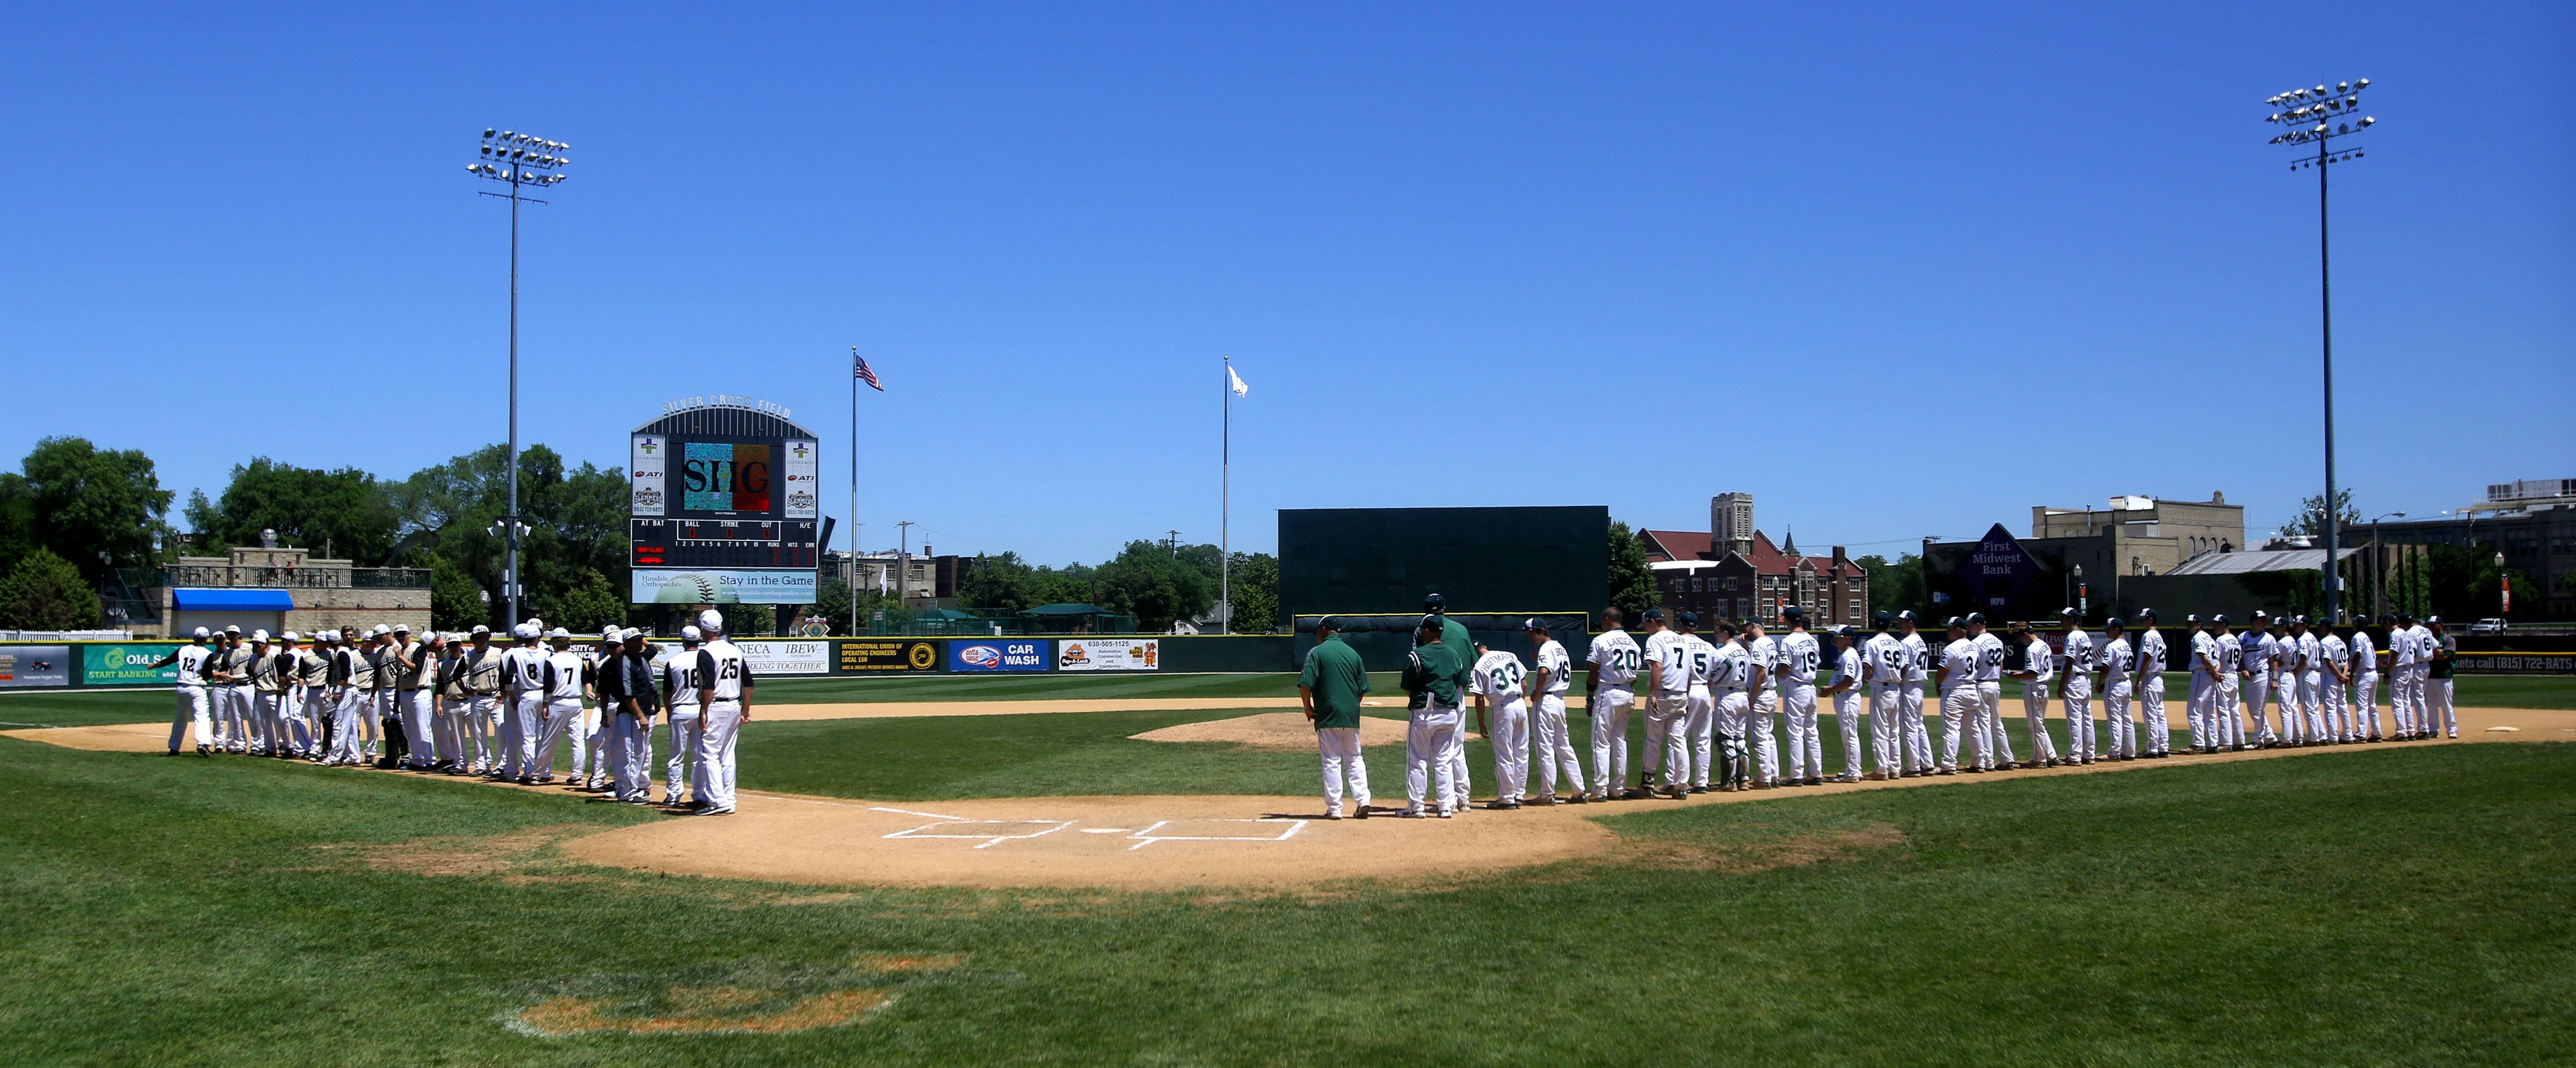 Pregame lineup introductions between Grayslake Central and Springfield Sacred Heart-Griffin during the Class 3A baseball state semifinals at Silver Cross Field in Joliet.